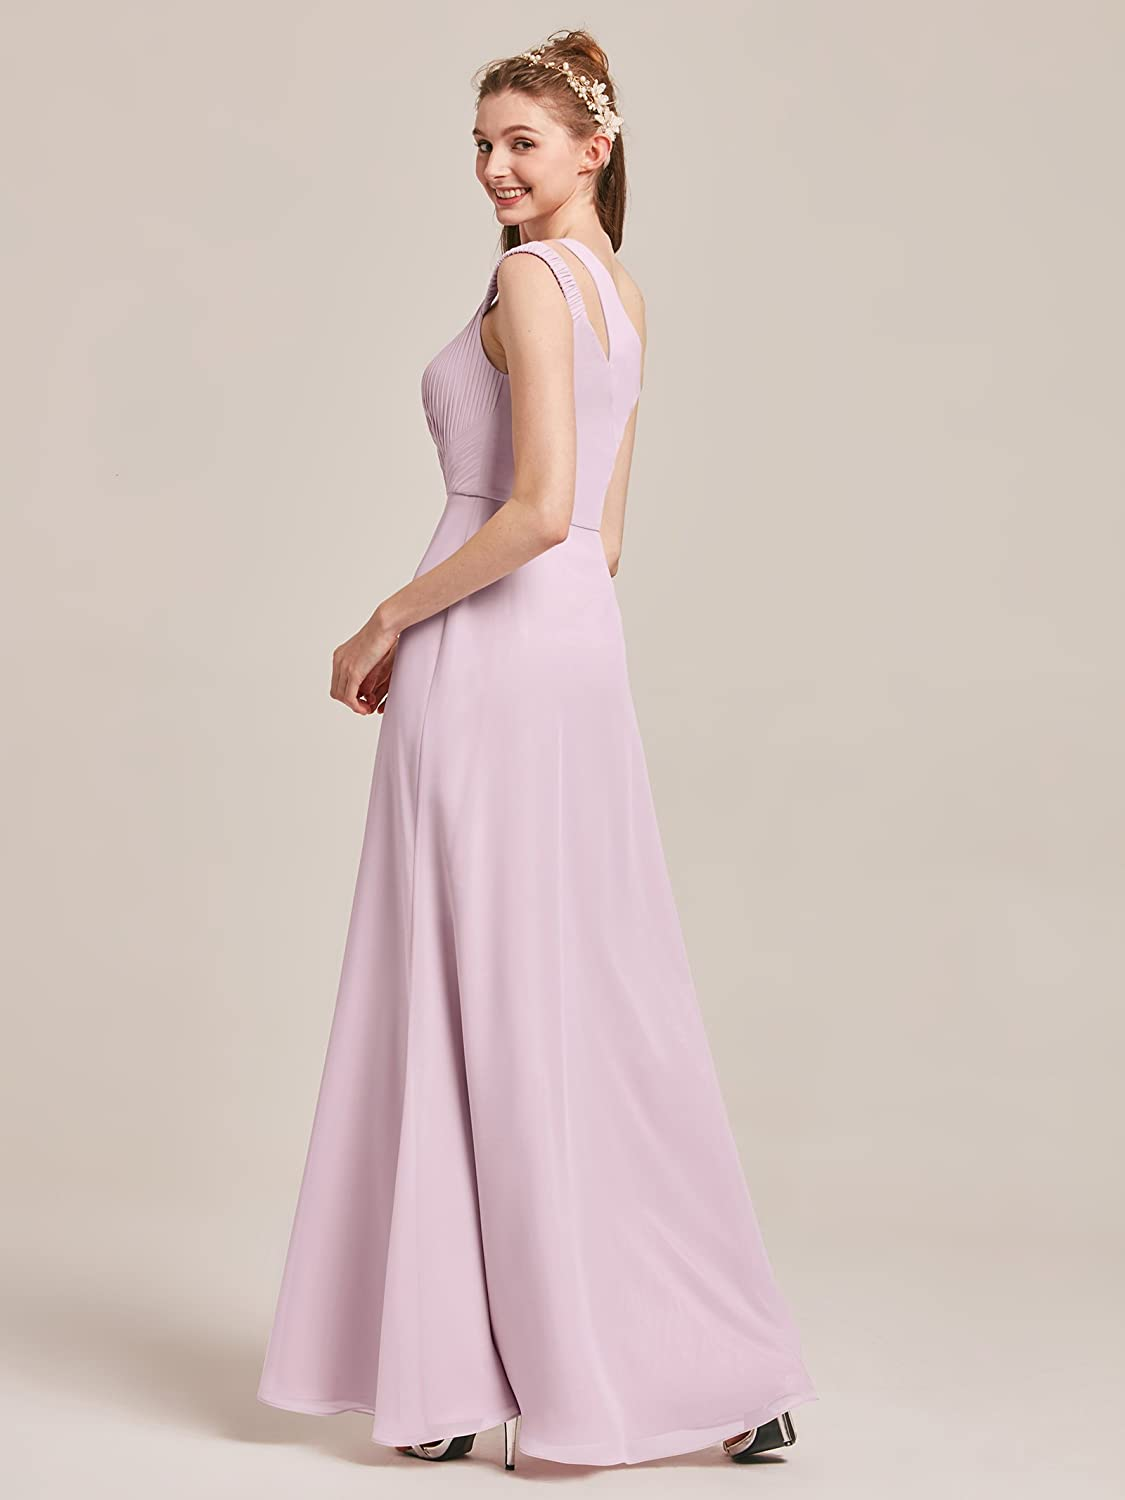 AWEI One Shoulder Bridesmaid Dress Long Prom Dress Sleeveless Maxi Dress for Wedding Party at Amazon Womens Clothing store: